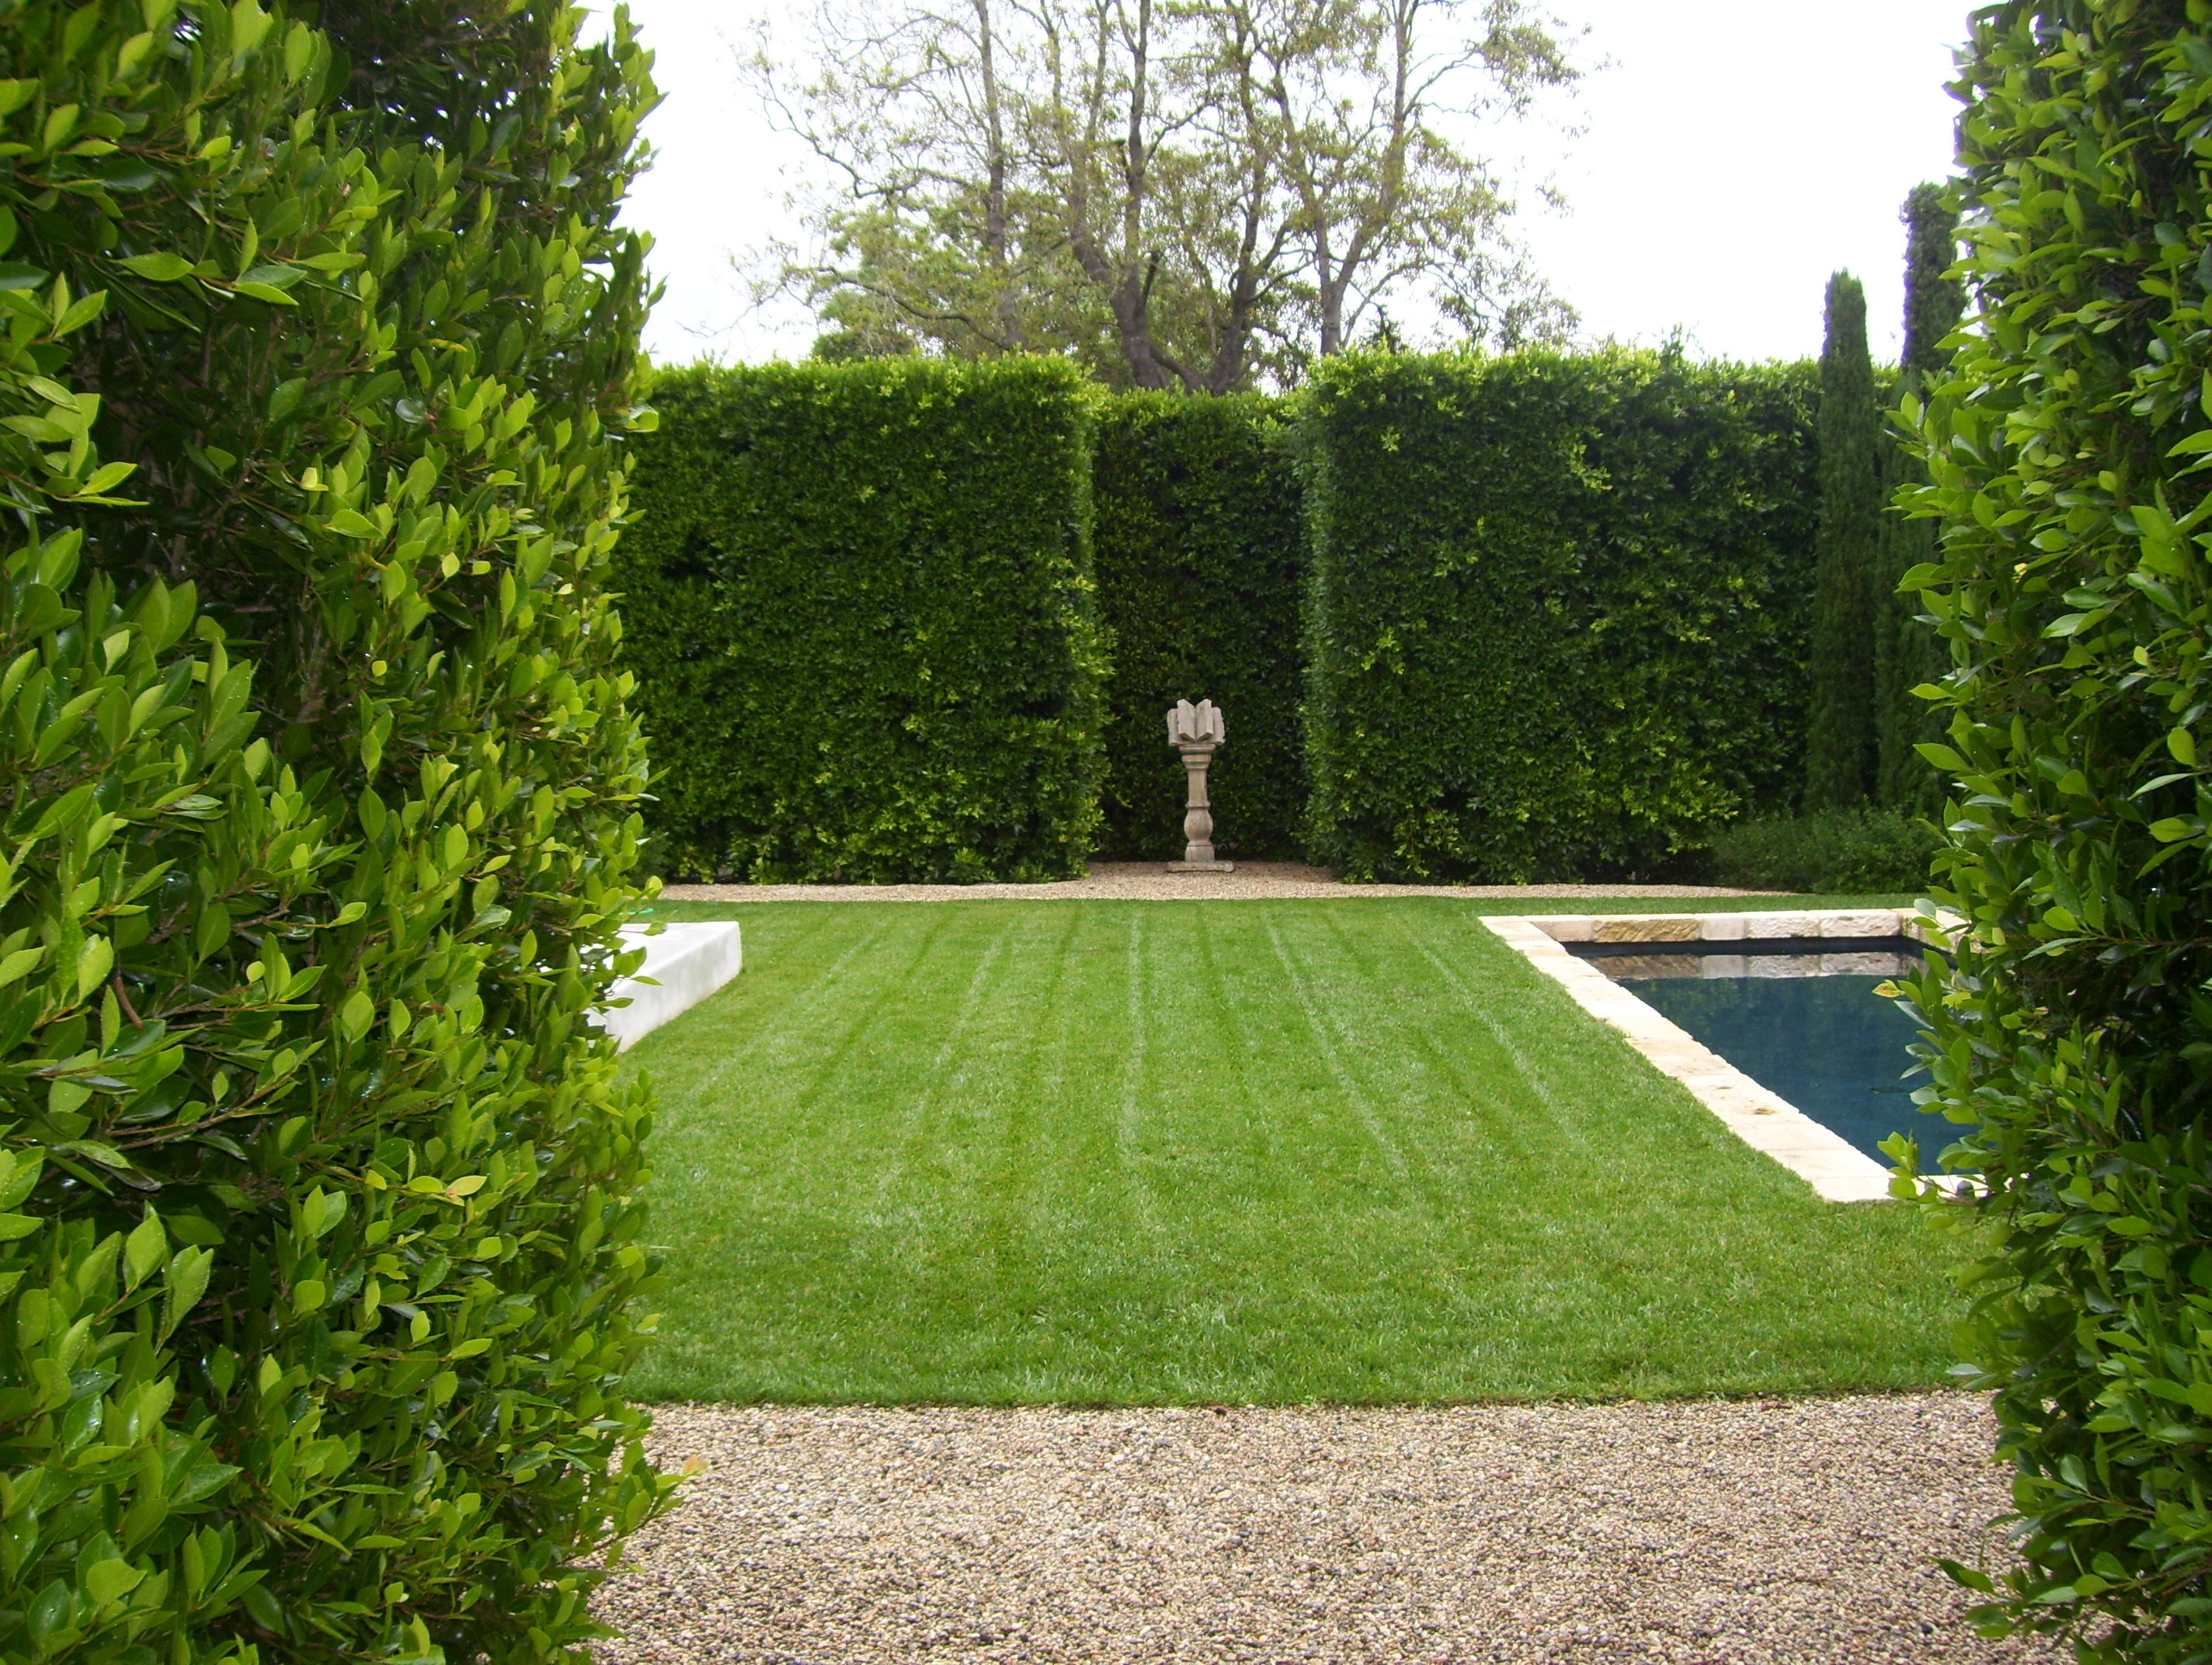 Speciality landscaping landscaping ideas santa barbara for Garden landscaping ideas